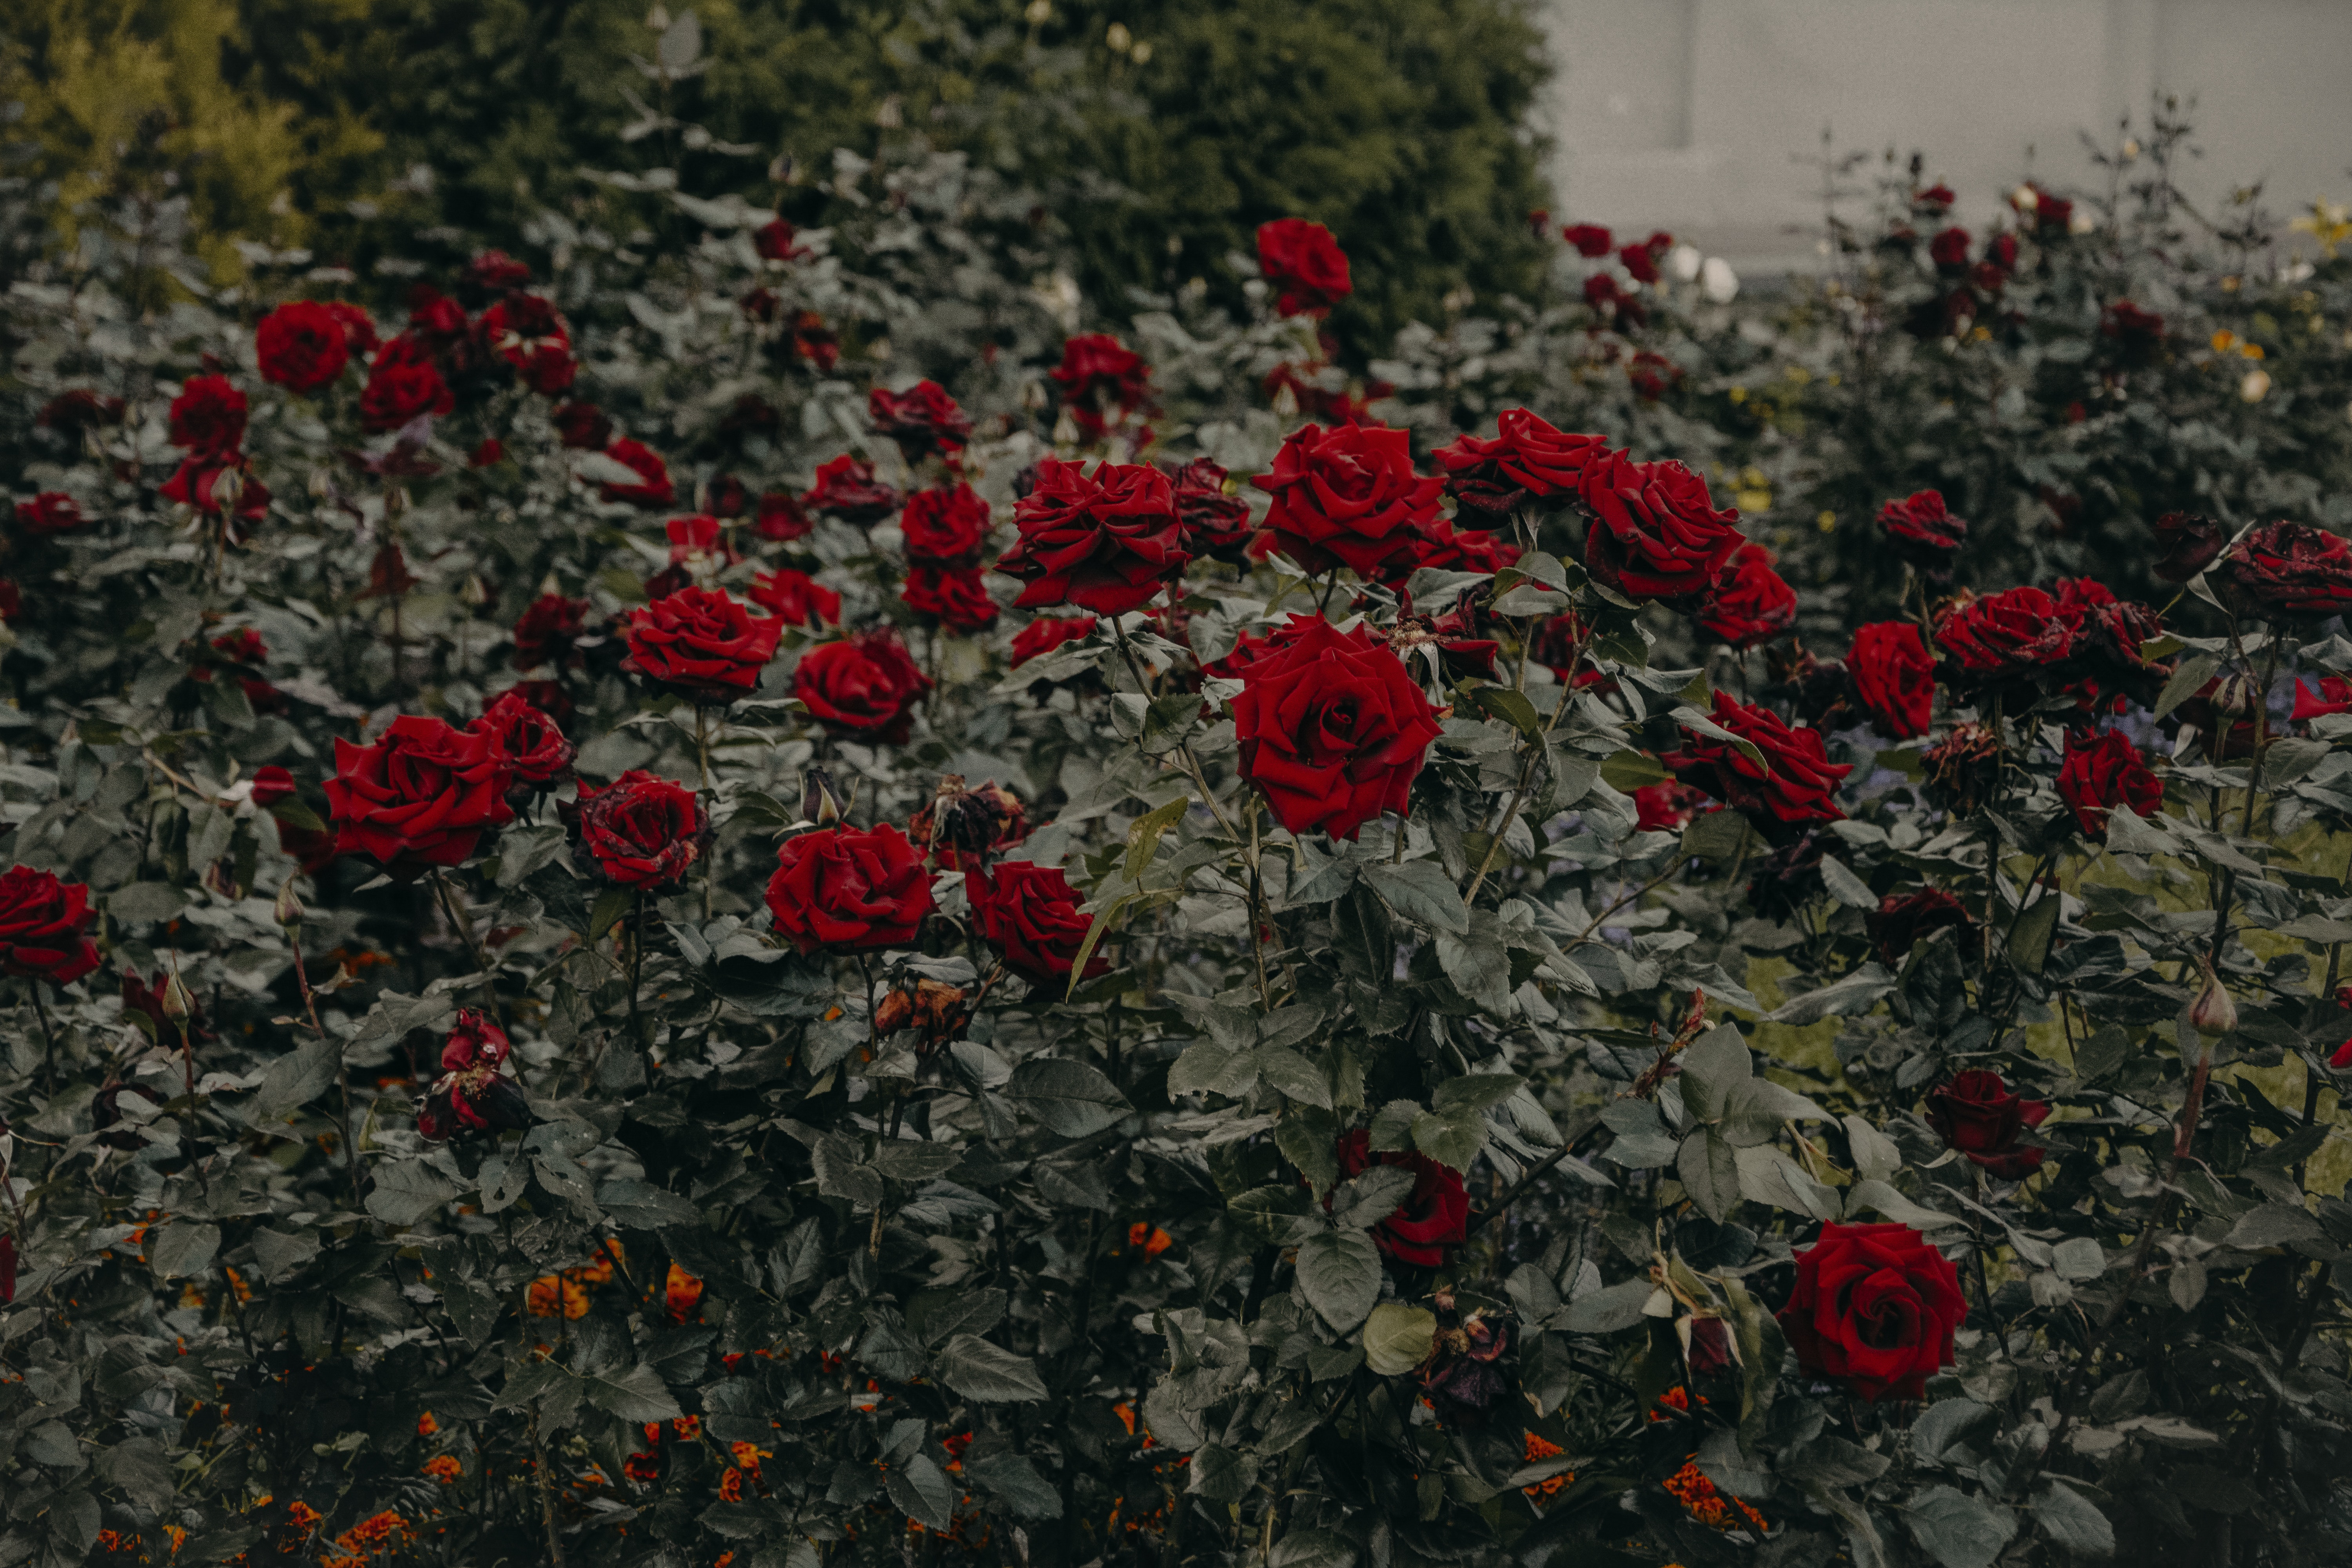 Red Roses, Landscape, Growth, Garden, Peonies, HQ Photo